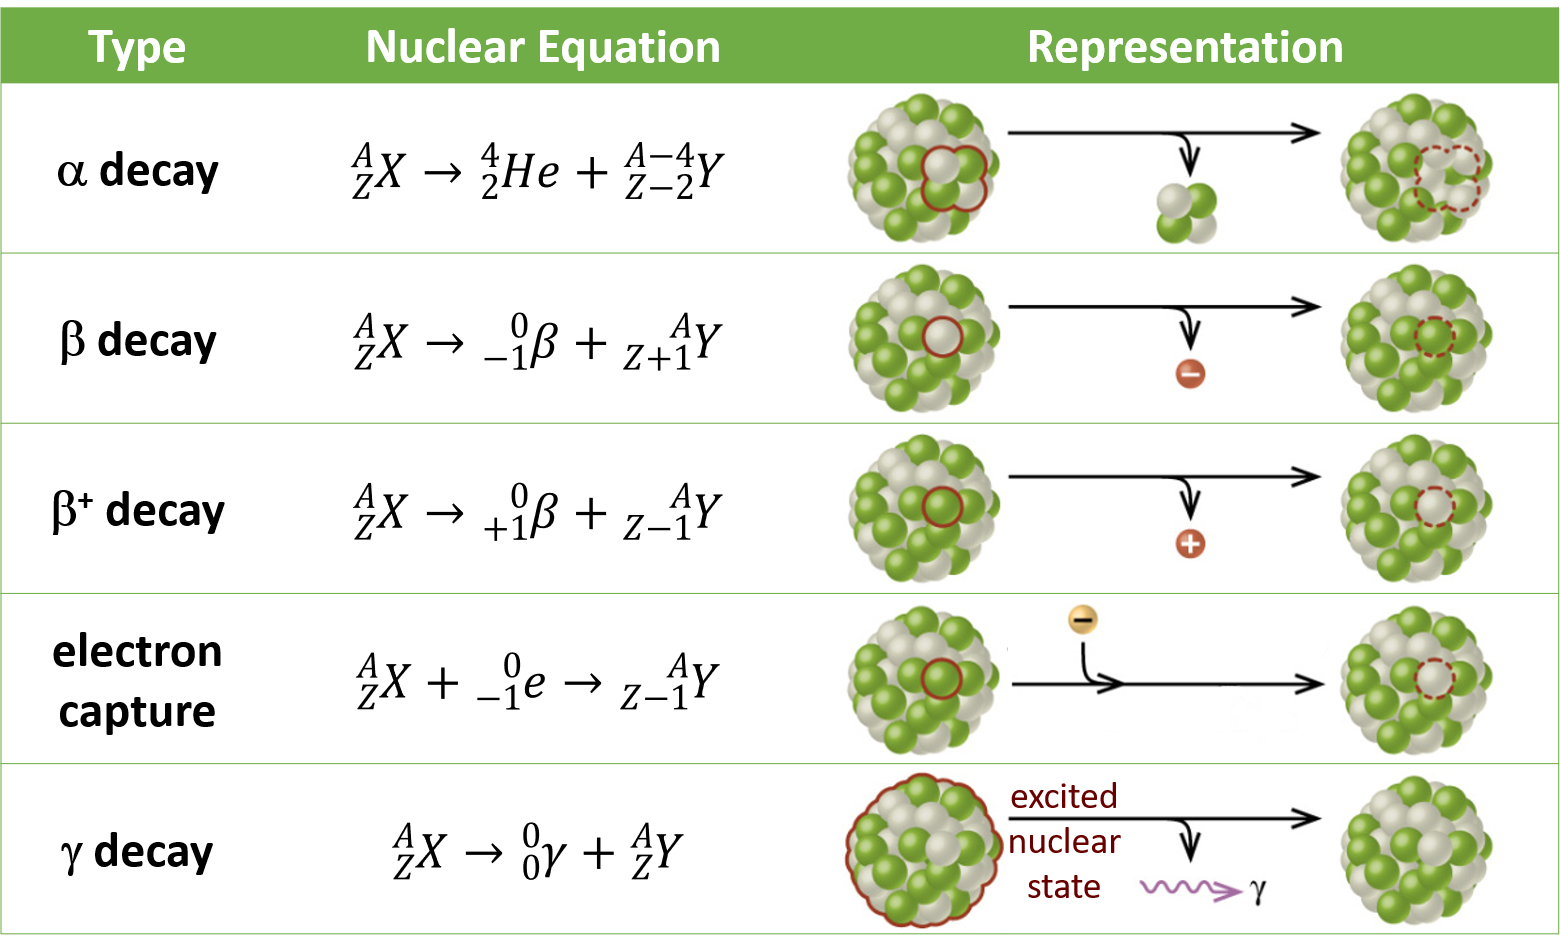 "This table has four columns and six rows. The first row is a header row and it labels each column: ""Type,"" ""Nuclear equation,"" and ""Representation."" Under the ""Type"" column are the following: ""Alpha decay,"" ""Beta decay,"" ""Positron emission,"" ""Electron capture,"" and ""Gamma decay."" Under the ""Nuclear equation"" column are several equations. Each begins with superscript A stacked over subscript Z X. There is arrow and then the following equations: ""superscript 4 stacked over subscript 2 He plus superscript A minus 4 stacked over subscript Z minus 2 Y,"" ""superscript 0 stacked over subscript negative 1 e plus superscript A stacked over subscript Z plus 1 Y,"" ""superscript 0 stacked over subscript 0 lowercase gamma plus superscript A stacked over subscript Z Y,"" ""superscript 0 stacked over subscript positive 1 e plus superscript A stacked over subscript Y minus 1 Y,"" and ""superscript 0 stacked over subscript negative 1 e plus superscript A stacked over subscript Y minus 1 Y."" Under the ""Representation"" column are the five diagrams. The first shows a cluster of green and white spheres. A section of the cluster containing two white and two green spheres is outlined. There is a right-facing arrow pointing to a similar cluster as previously described, but the outlined section is missing. From the arrow another arrow branches off and points downward. The small cluster to two white spheres and two green spheres appear at the end of the arrow. The next diagram shows the same cluster of white and green spheres. One white sphere is outlined. There is a right-facing arrow to a similar cluster, but the white sphere is missing. Another arrow branches off the main arrow and a red sphere with a negative sign appears at the end. The next diagram shows the same cluster of white and green spheres. One green sphere is outlined. There is a right-facing arrow to a similar cluster, but the green sphere is missing. Another arrow branches off the main arrow and a red sphere with a positive sign appears at the end. The next diagram shows the same cluster of white and green spheres. One green sphere is outlined. There is a right-facing arrow to a similar cluster, but the green sphere is missing. An arrow branch off the main arrow and shows a gold sphere with a negative sign joining with the right-facing arrow. The next diagram shows the same cluster of white and green spheres. The whole sphere is outlined and labeled, ""excited nuclear state."" There is a right-facing arrow that points to the same cluster. No spheres are missing. Off the main arrow is another arrow which points to a purple squiggle arrow which in turn points to a lowercase gamma."